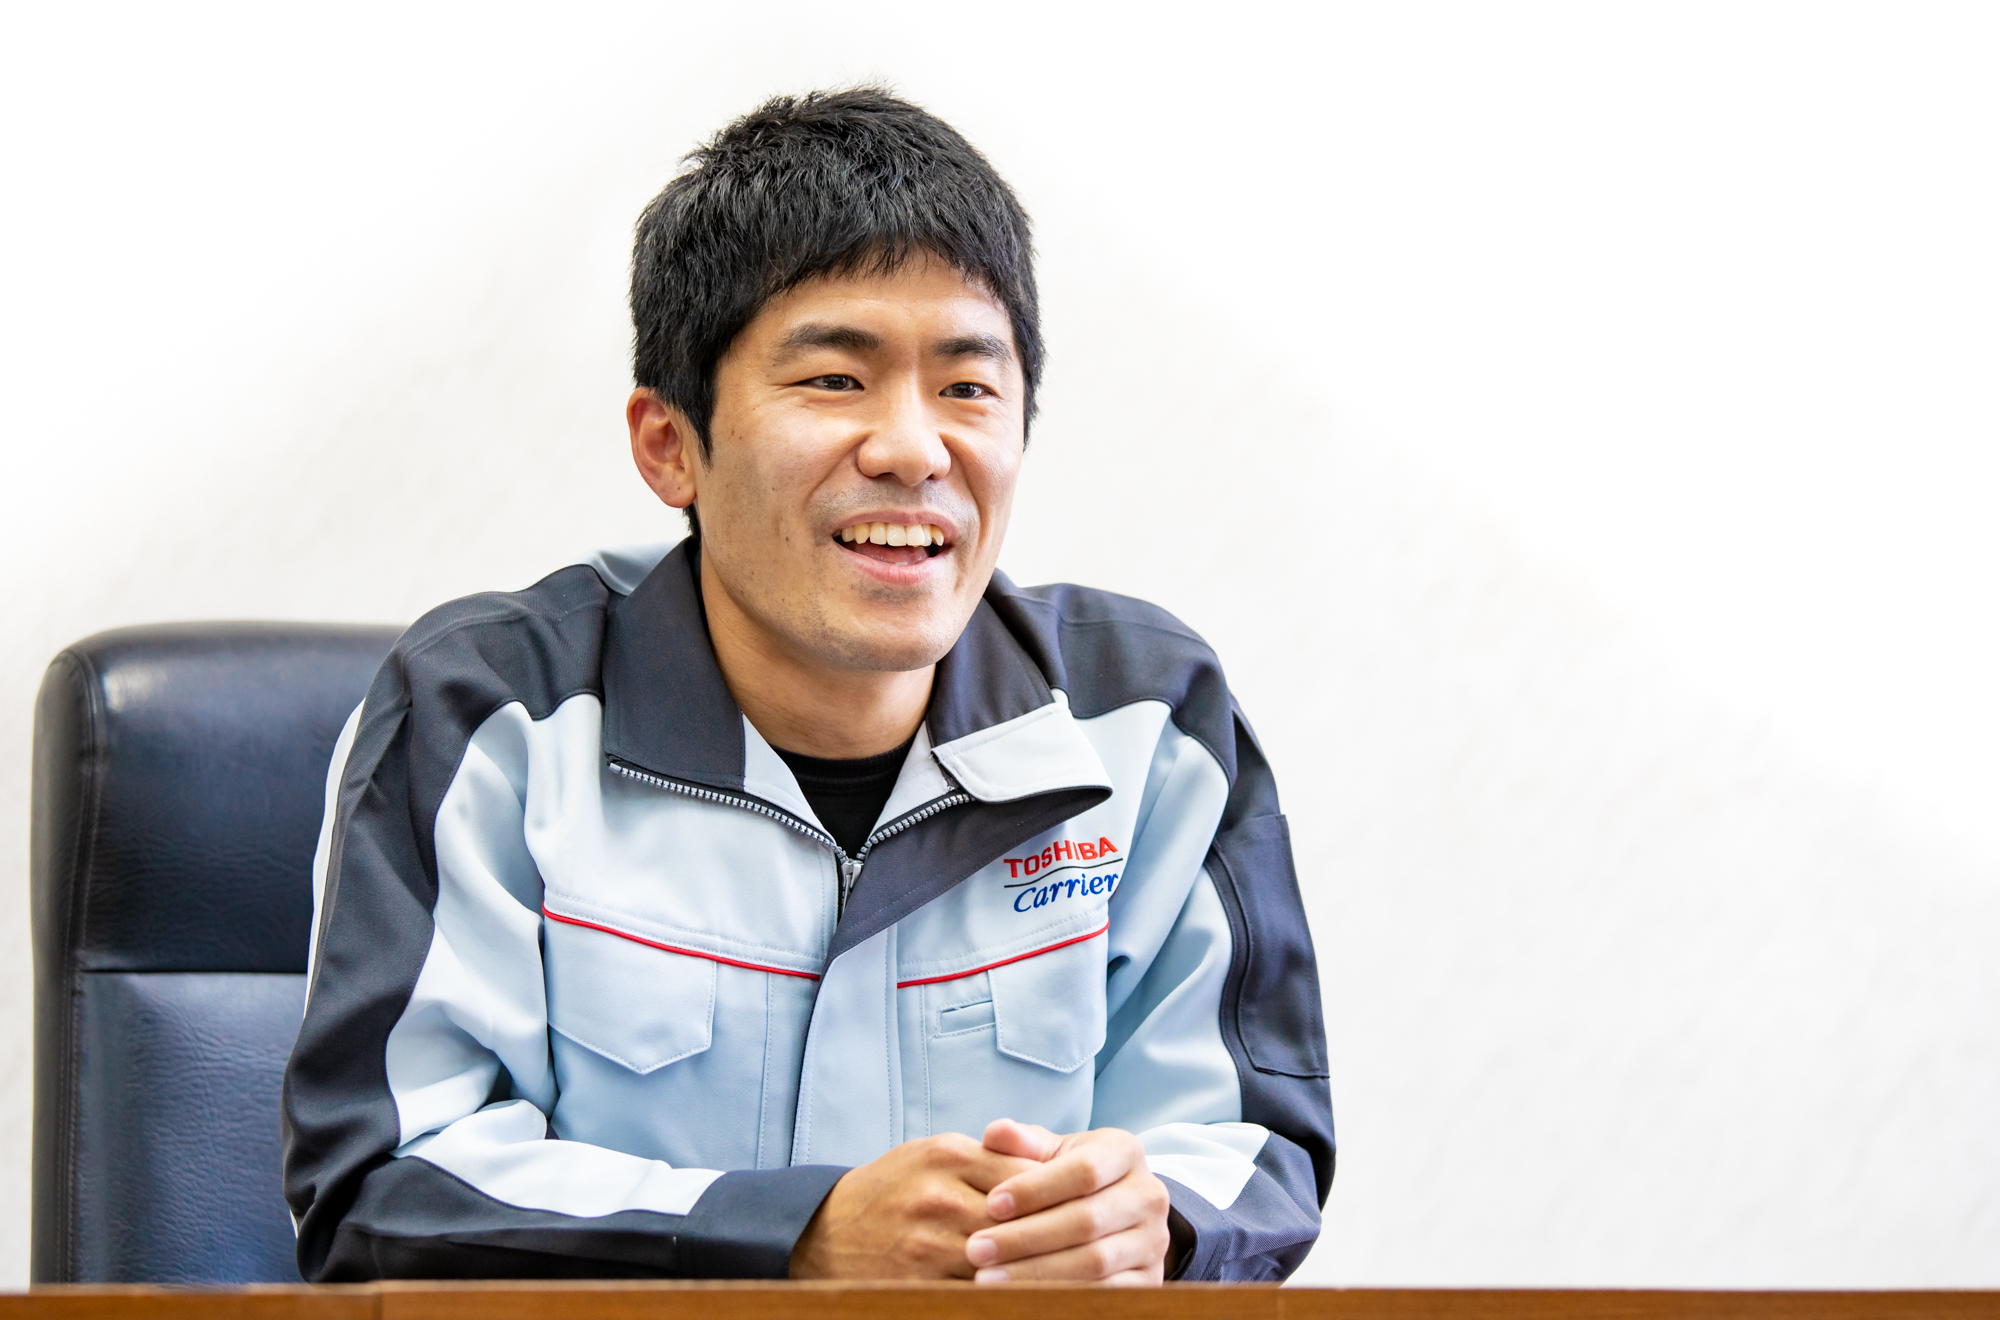 Mr. Masato Murase shares his experience as a facility maintenance engineer at Toshiba Carrier Corporation(1)